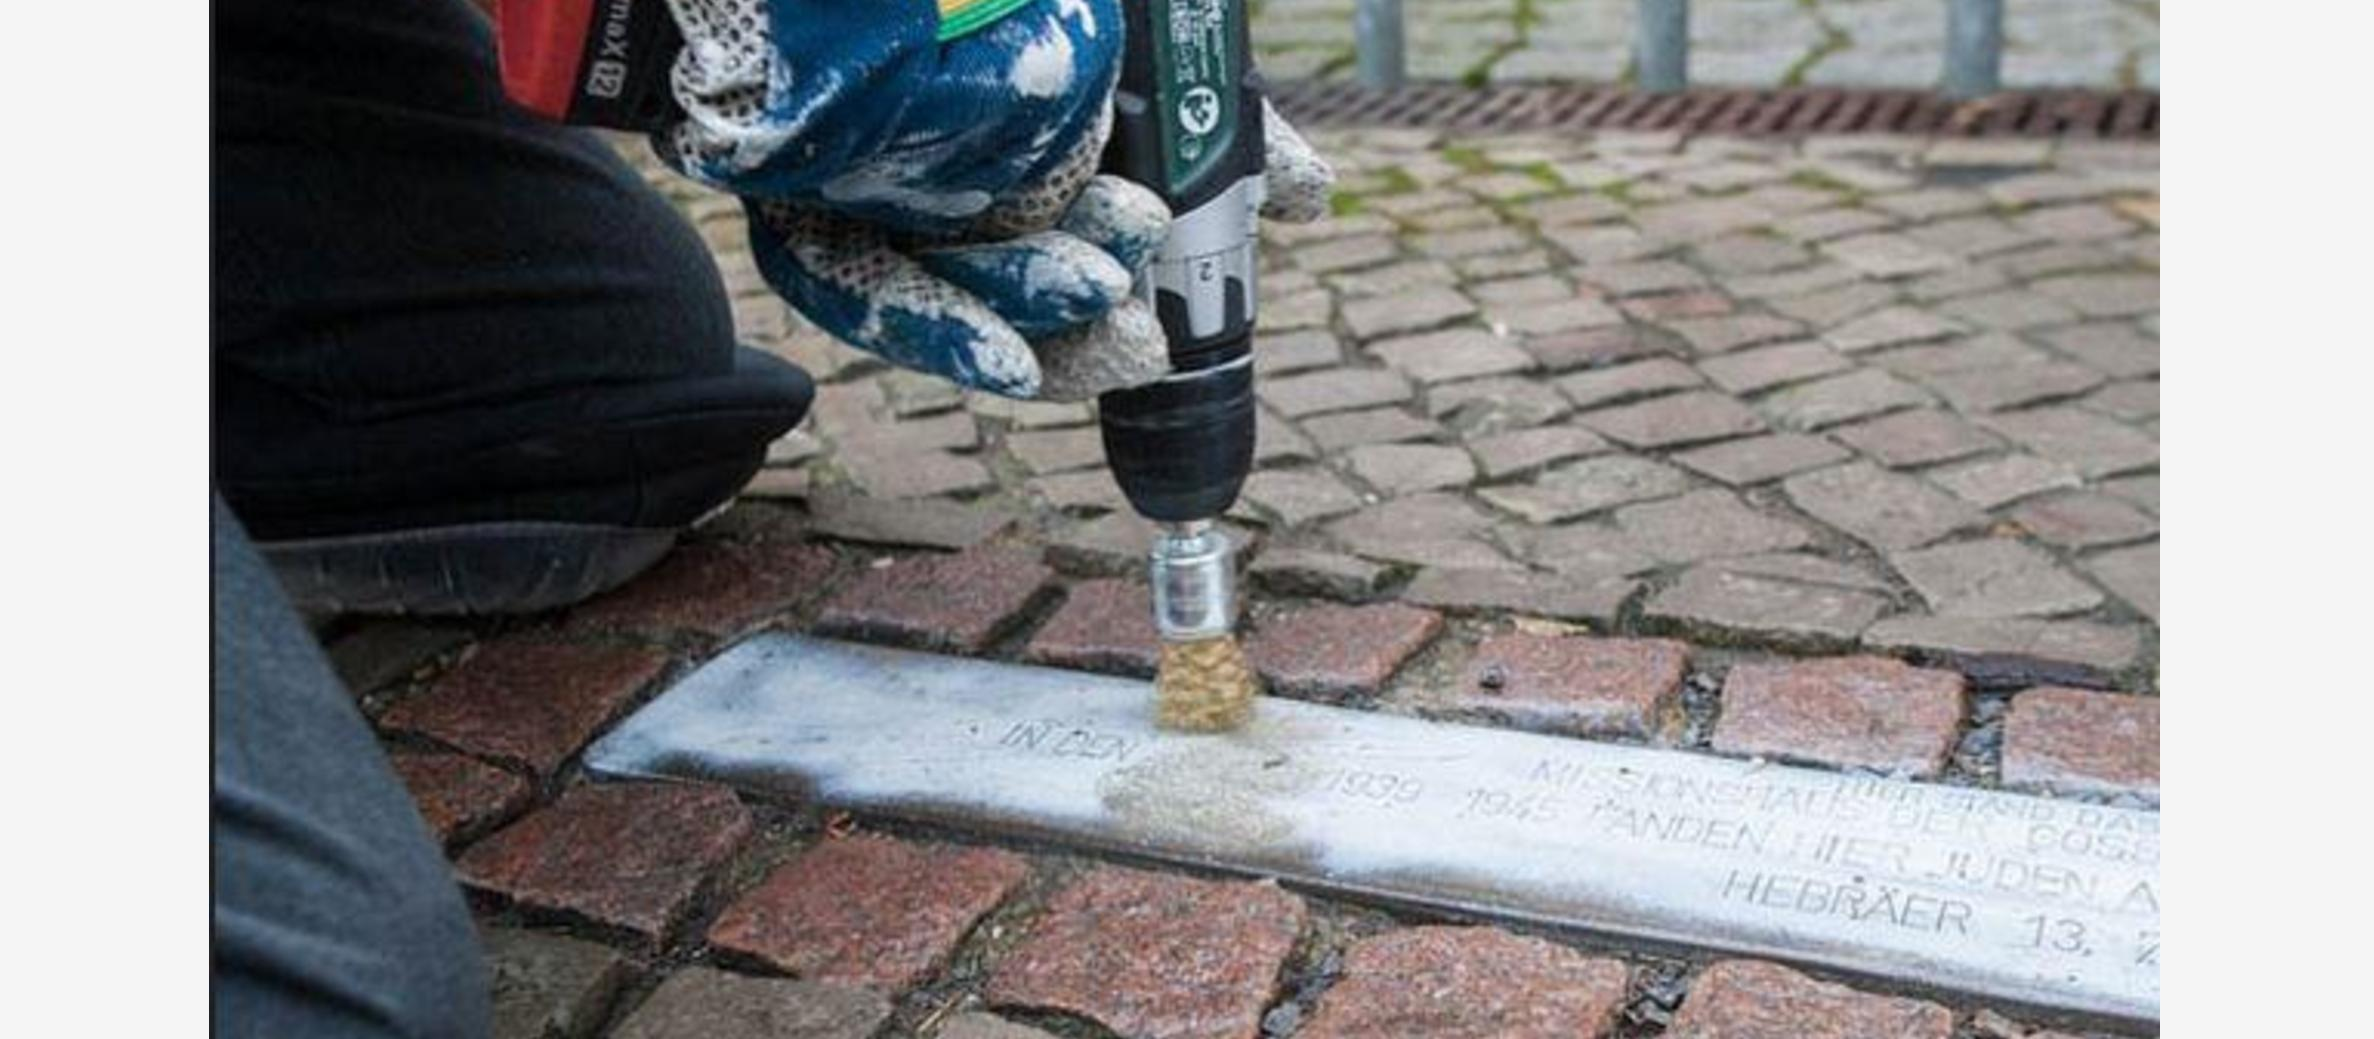 Holocaust memorial cobbles vandalised in Germany